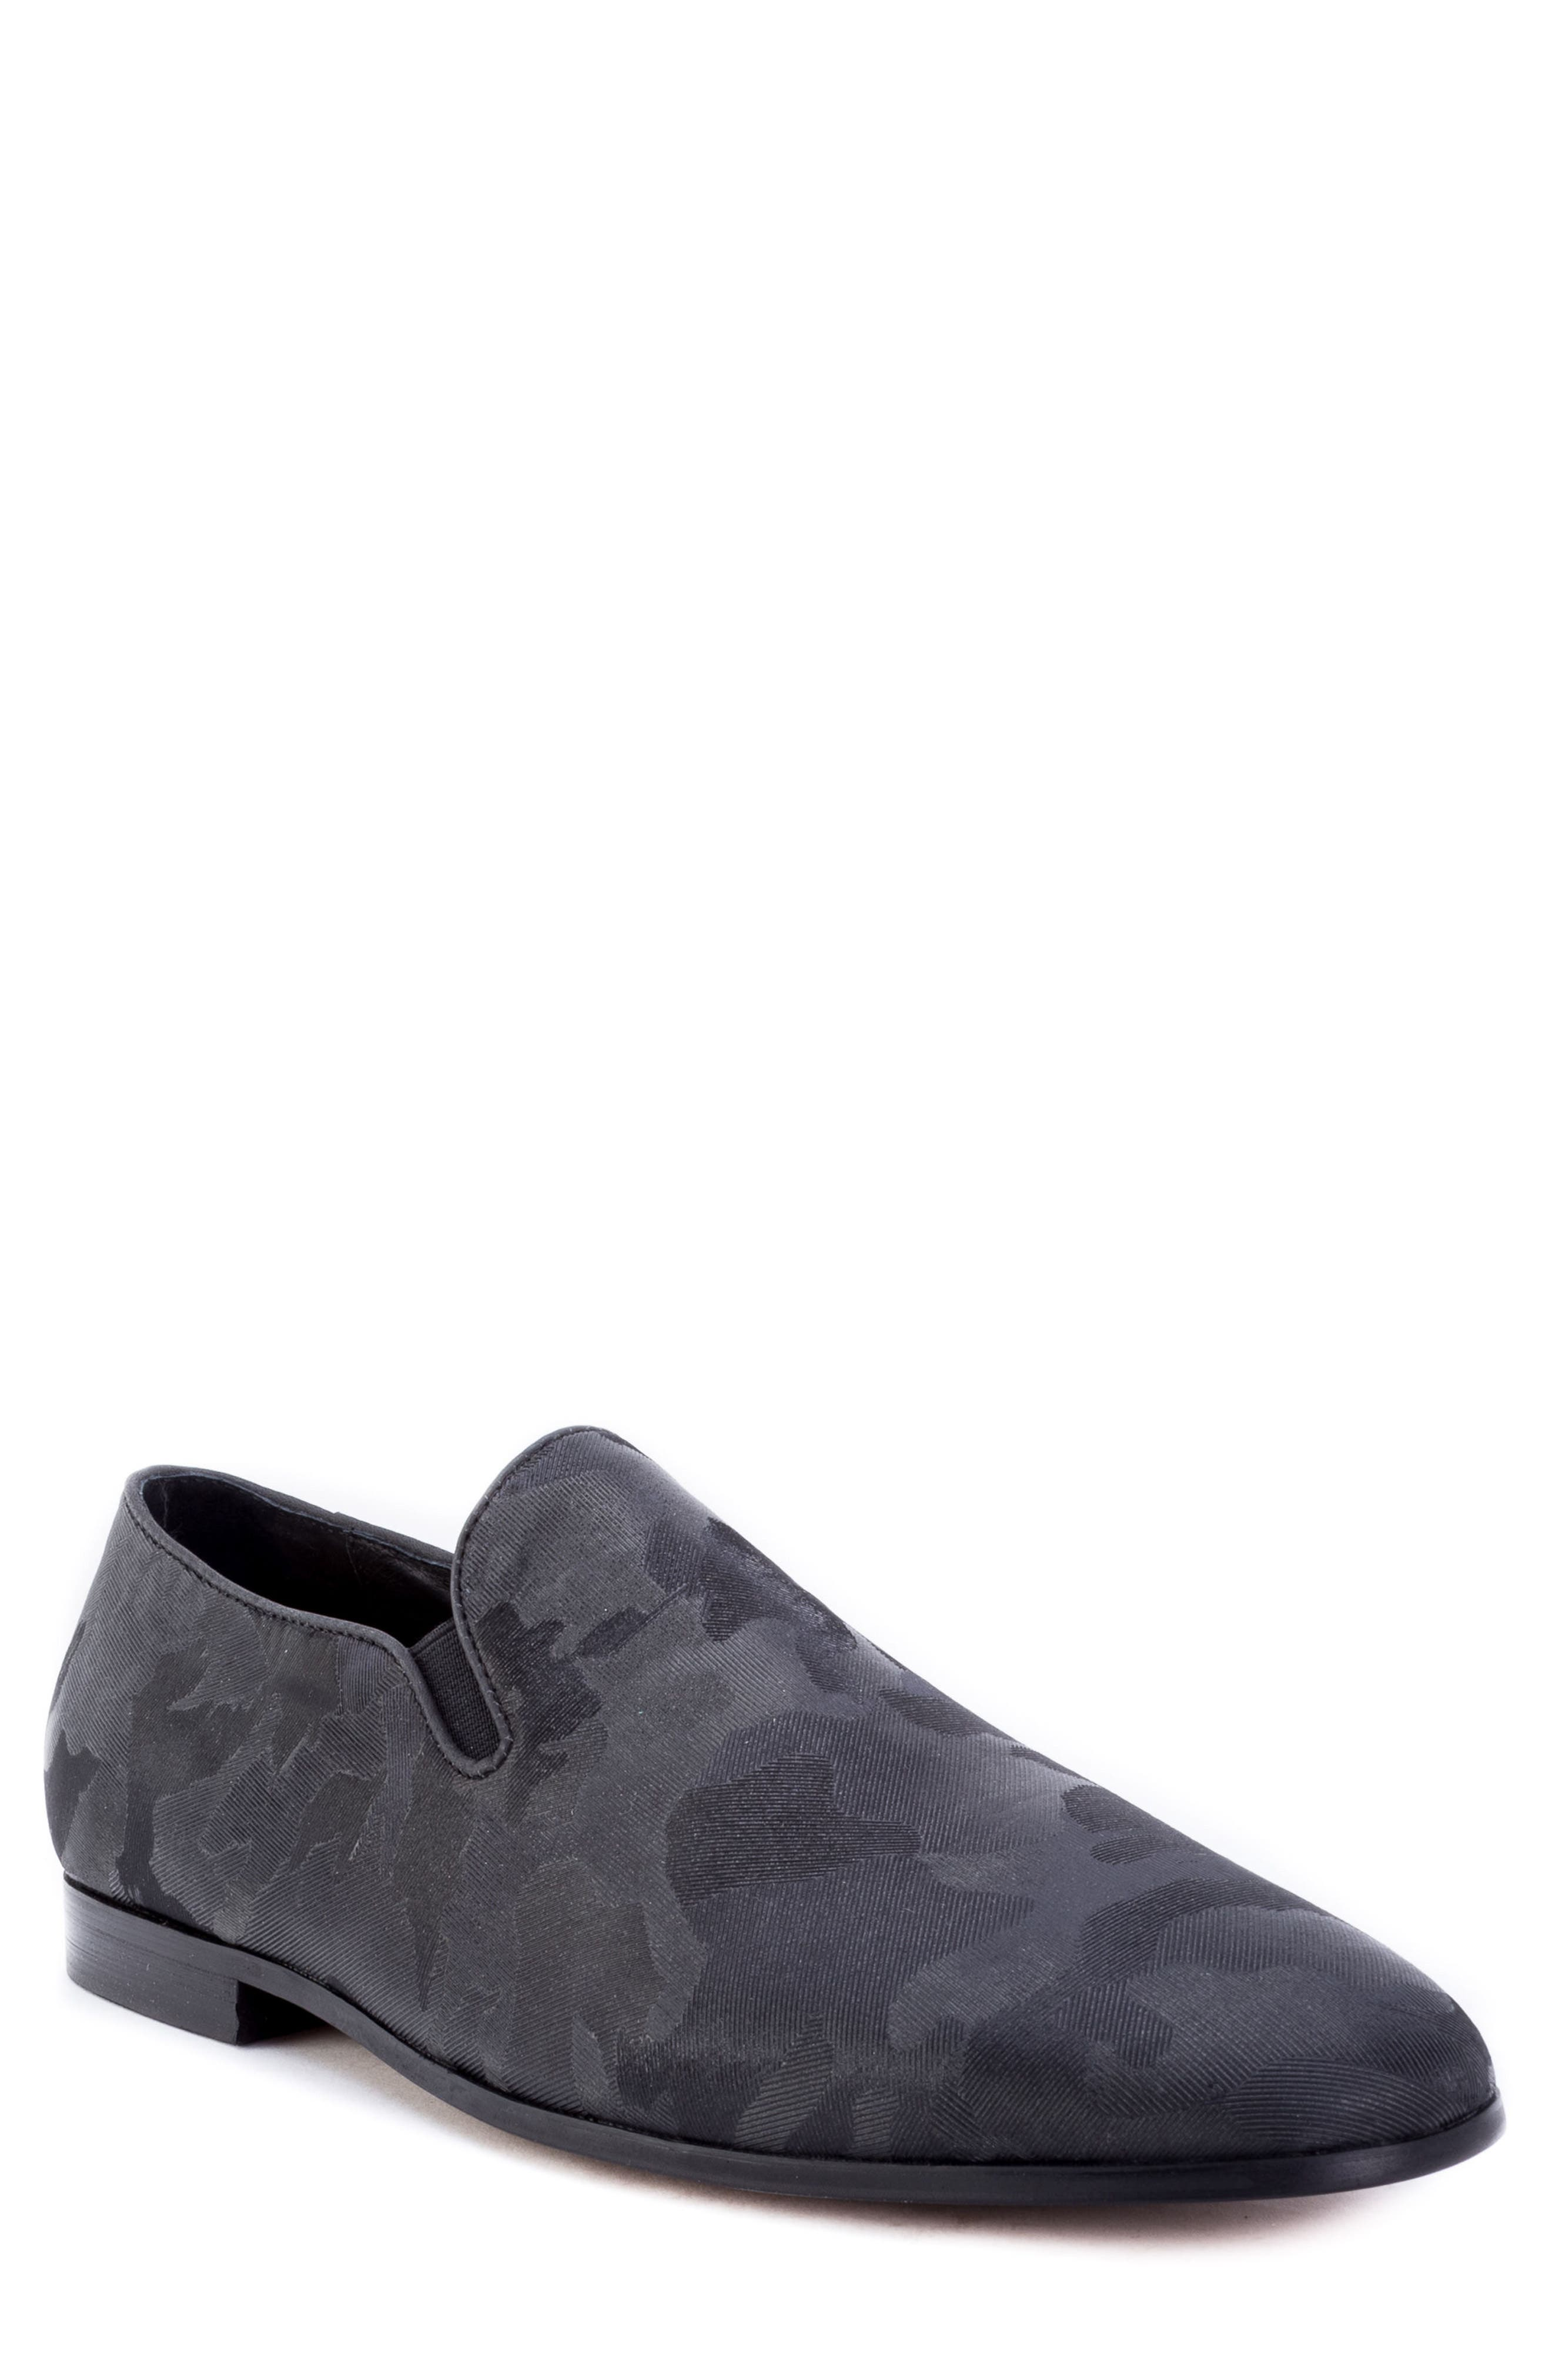 Fry Camouflage Venetian Loafer,                         Main,                         color, BLACK FABRIC